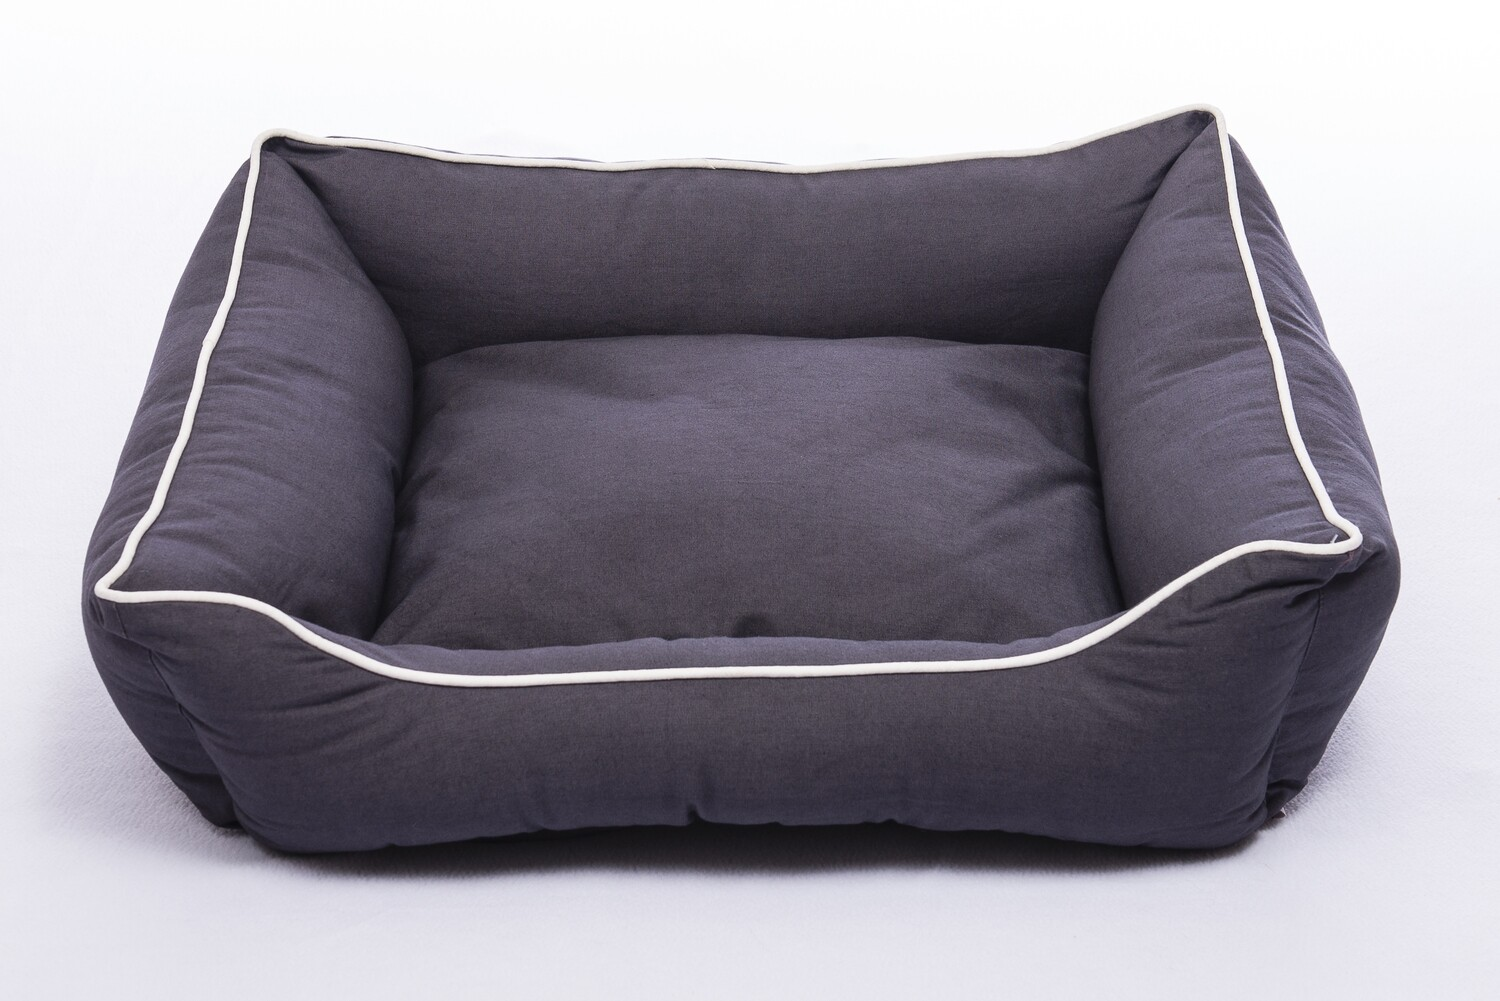 DGS Lounger Bed X Small - Pebble Grey